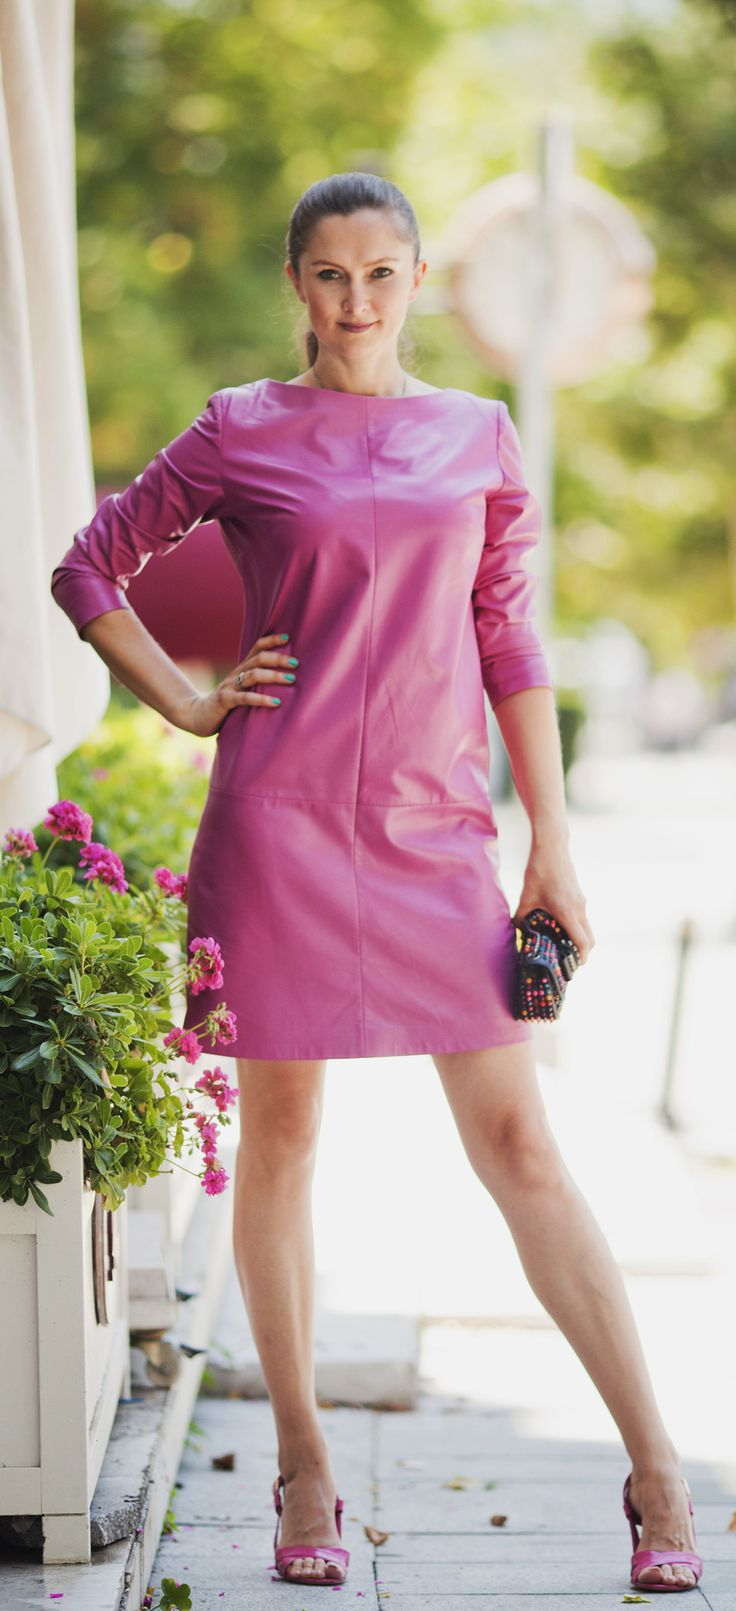 Pink leather dress by ADAMOFUR #inspiration #leather #leatherdress #pink #fashion